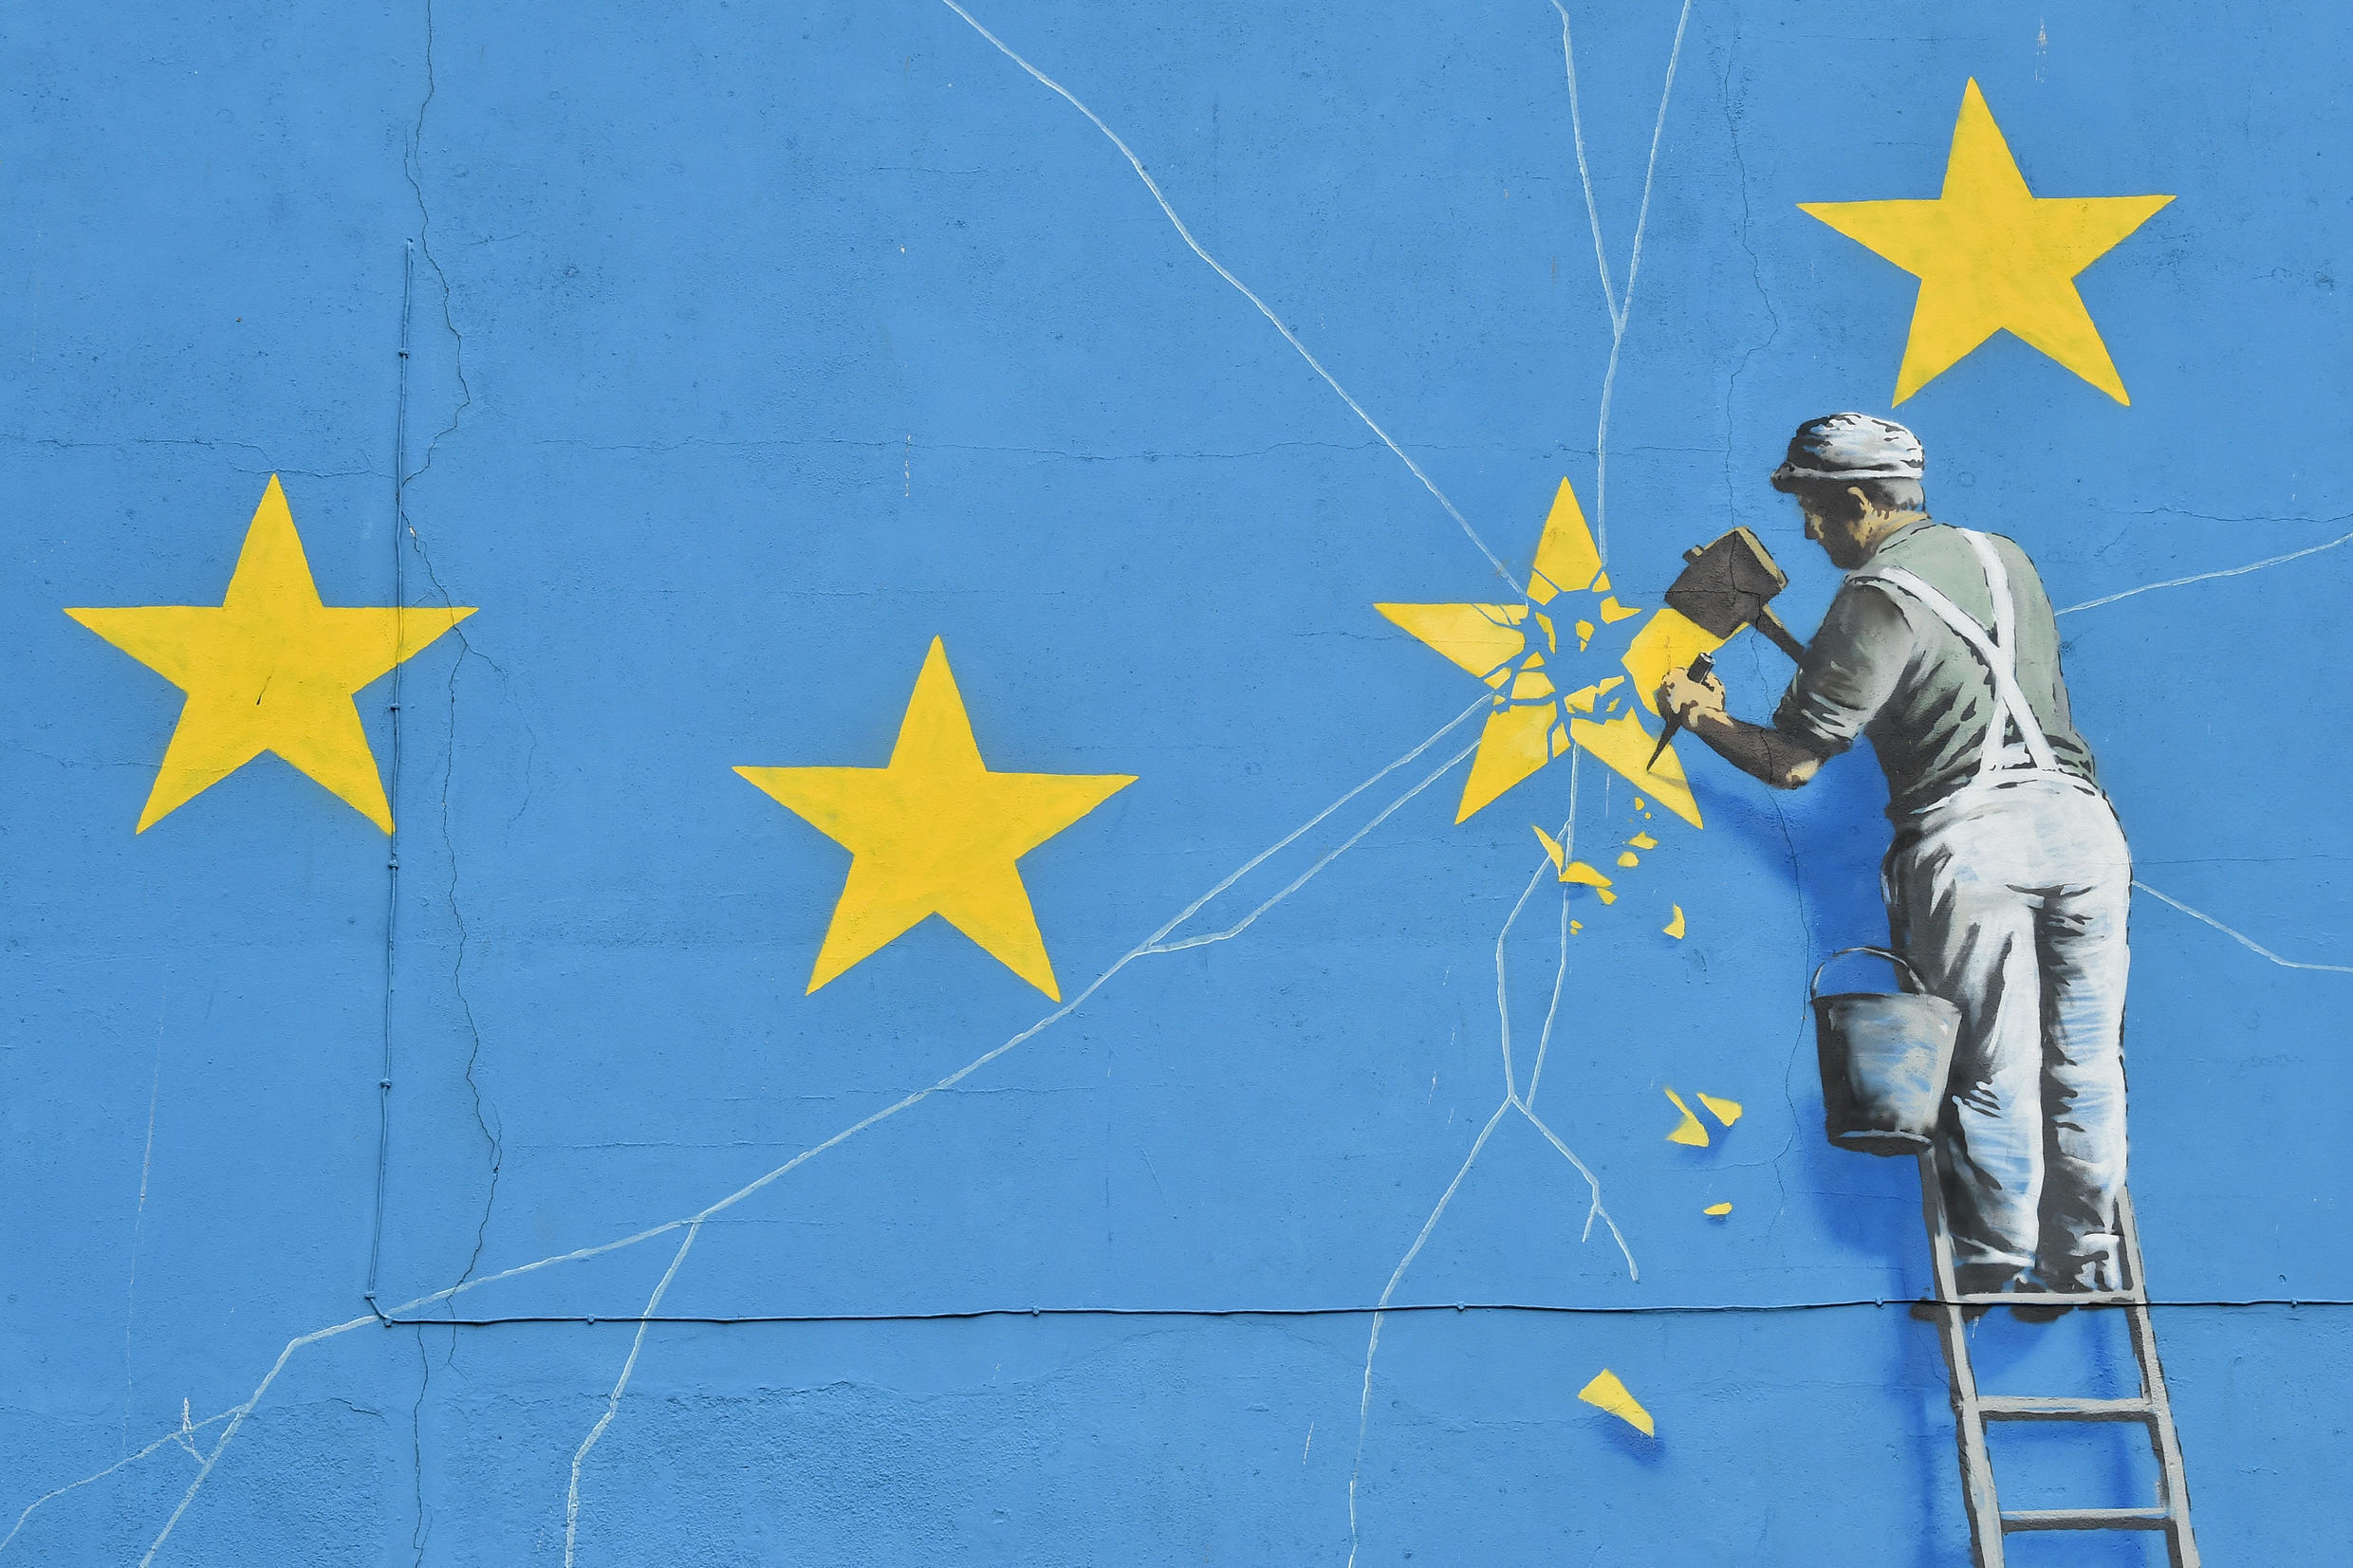 A mural by British artist Banksy, Dover, January 7, 2019